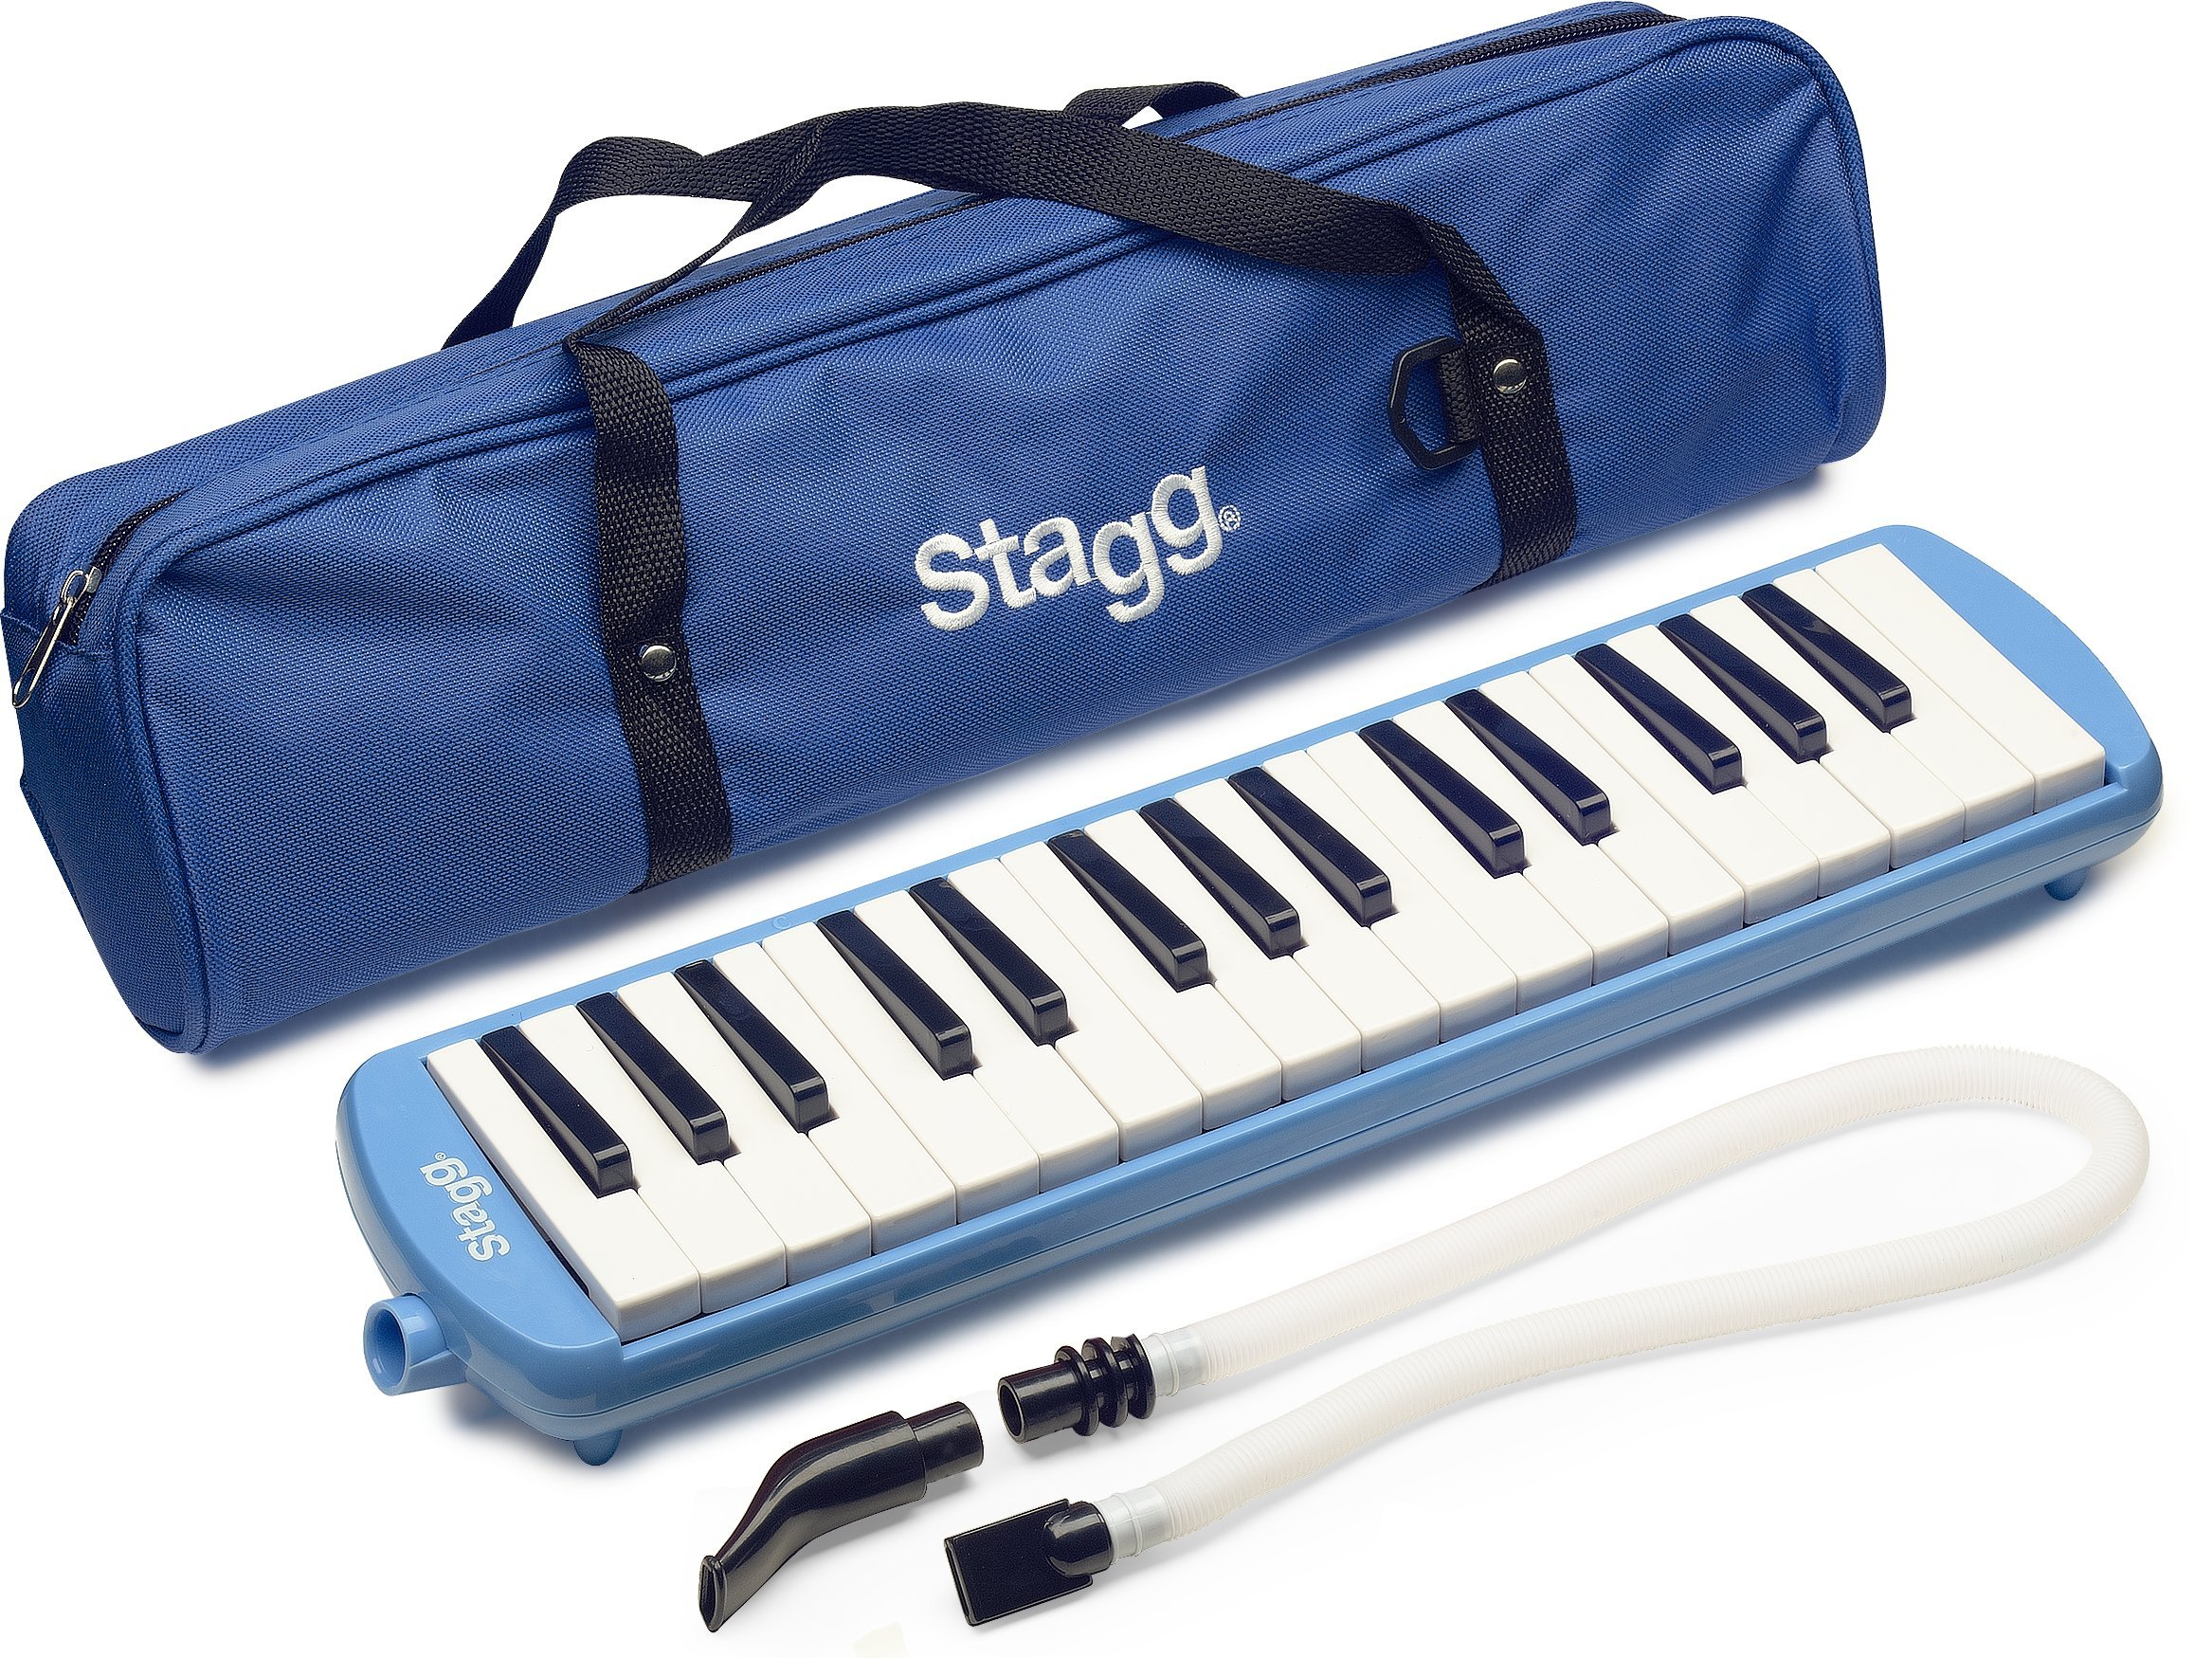 Stagg MELOSTA32 BL 32-Key Melodica with Nylon Gig Bag Included, Blue